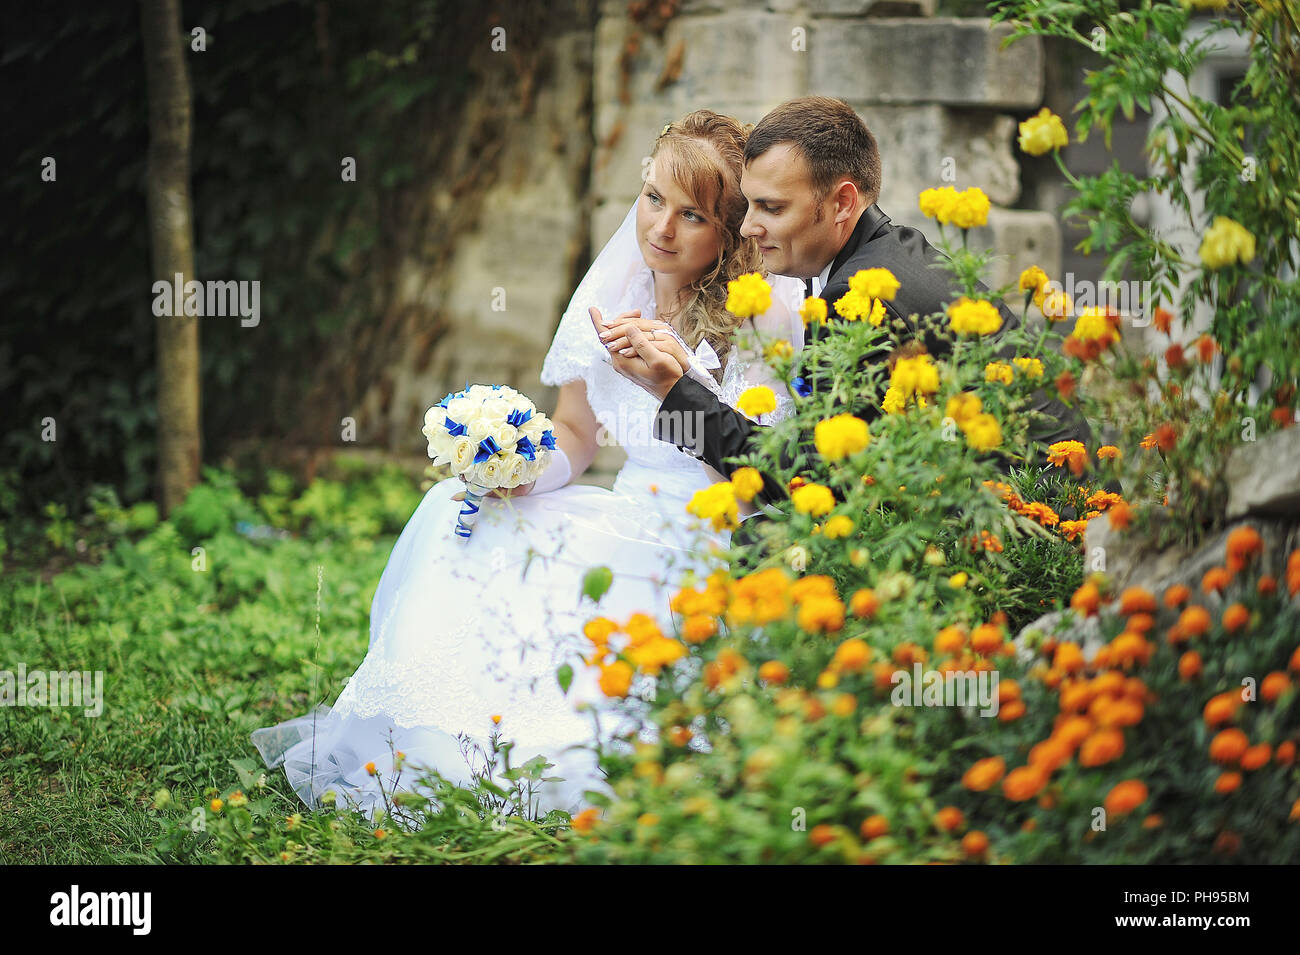 Newlyweds siting near flowers and holding hands - Stock Image